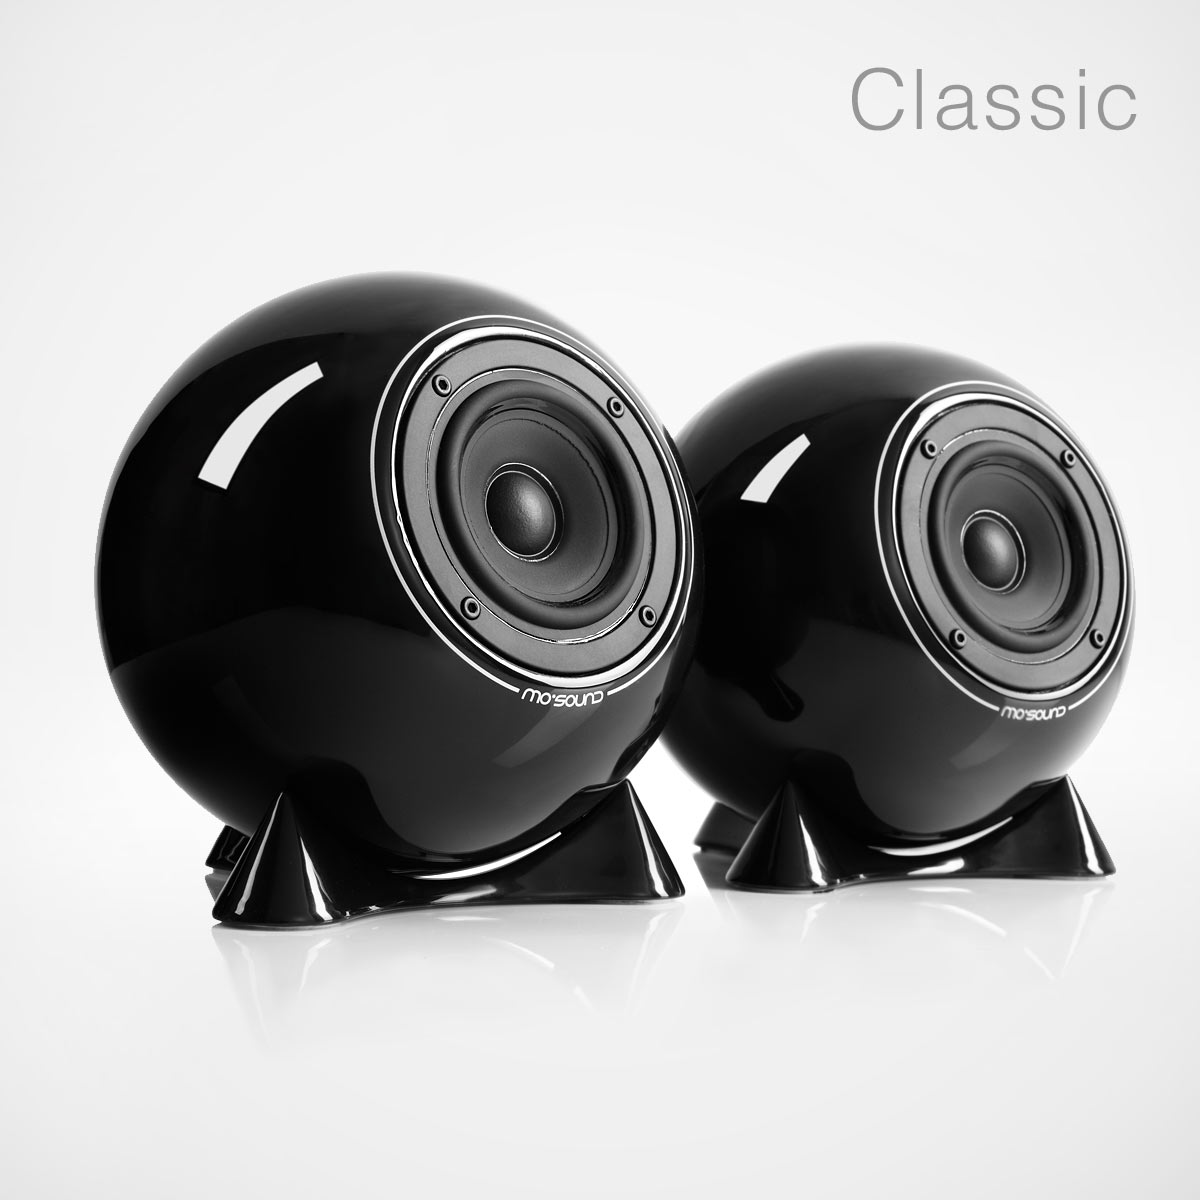 Ball Speakers Black Classic